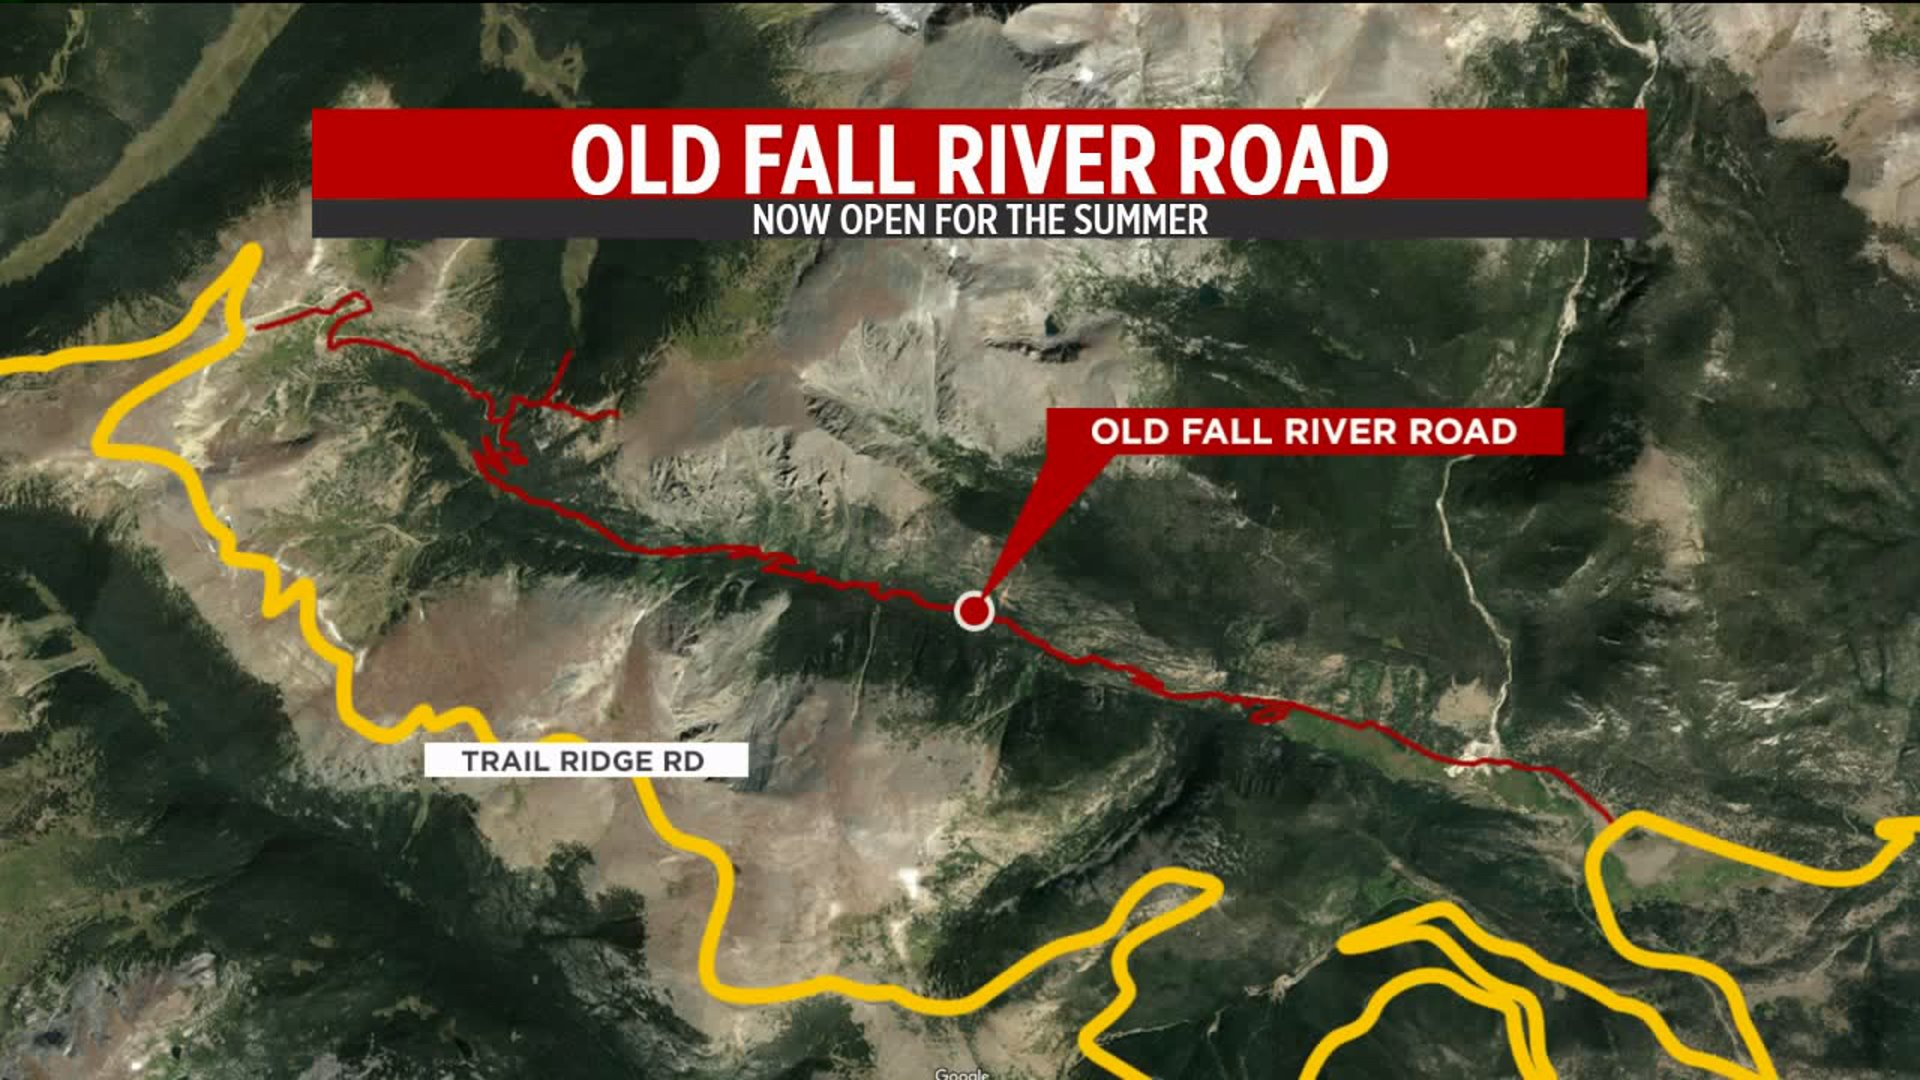 Old Fall River Road opens for the season in Rocky Mountain